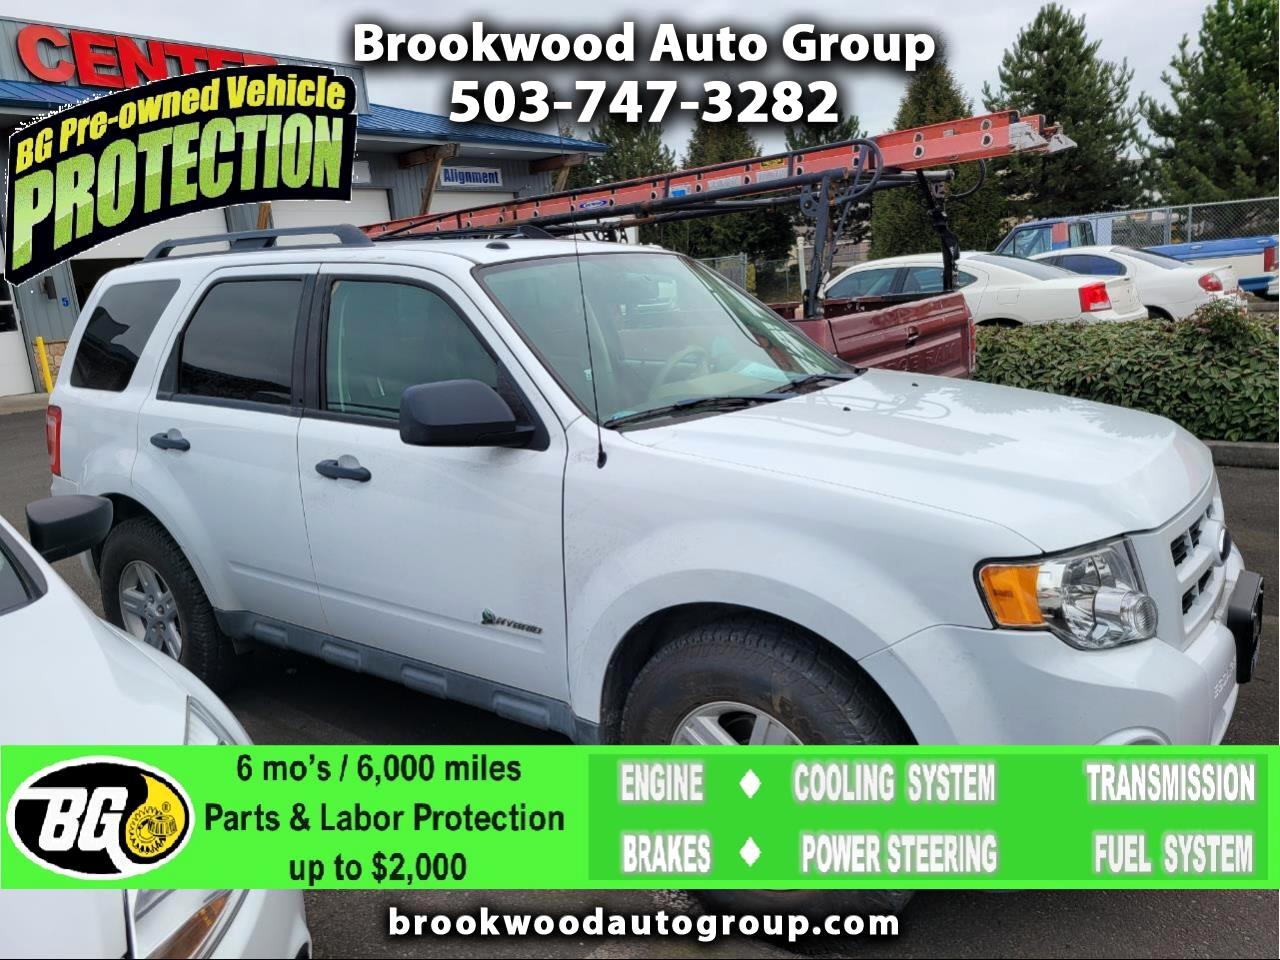 Ford Escape 4WD 4dr I4 CVT Hybrid 2009